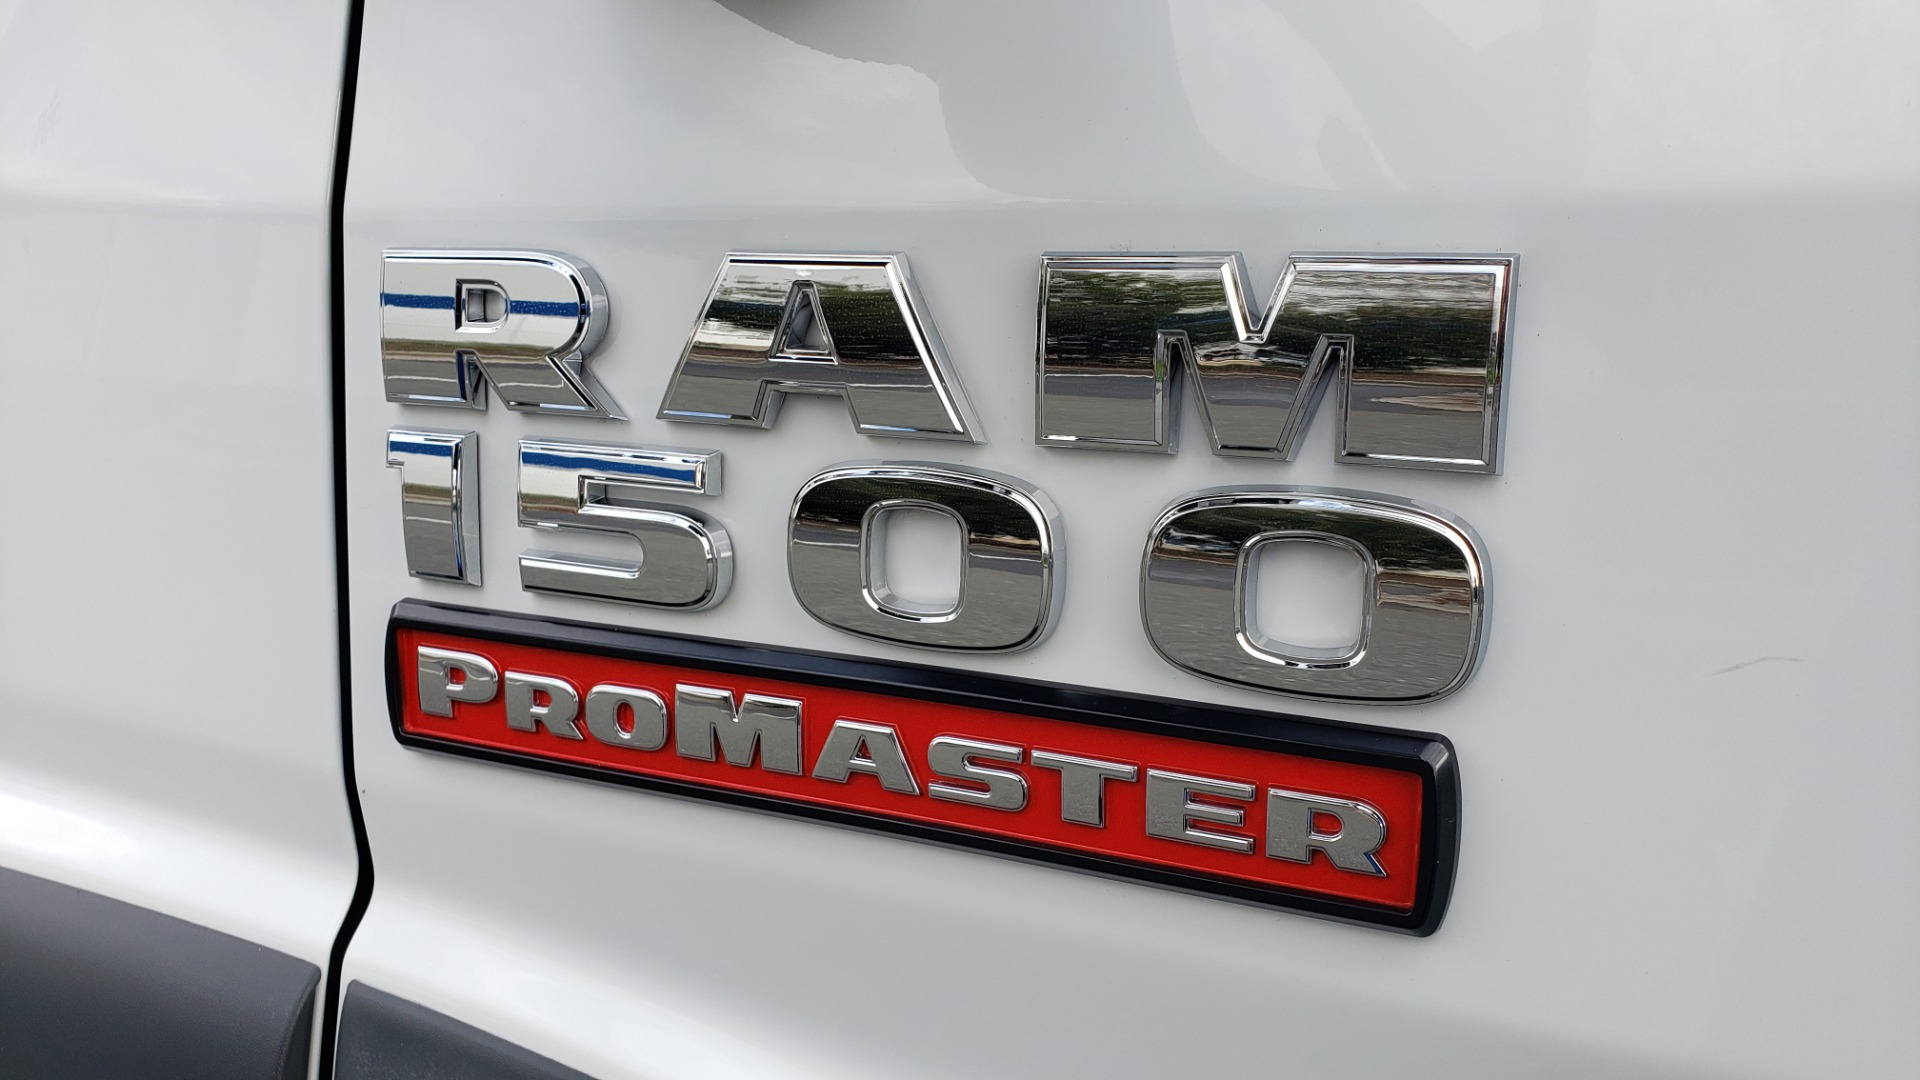 Used 2015 Ram PROMASTER CARGO VAN 136-INCH WB / LOW ROOF / LADDER RACK / INSIDE RACKS for sale $16,995 at Formula Imports in Charlotte NC 28227 10